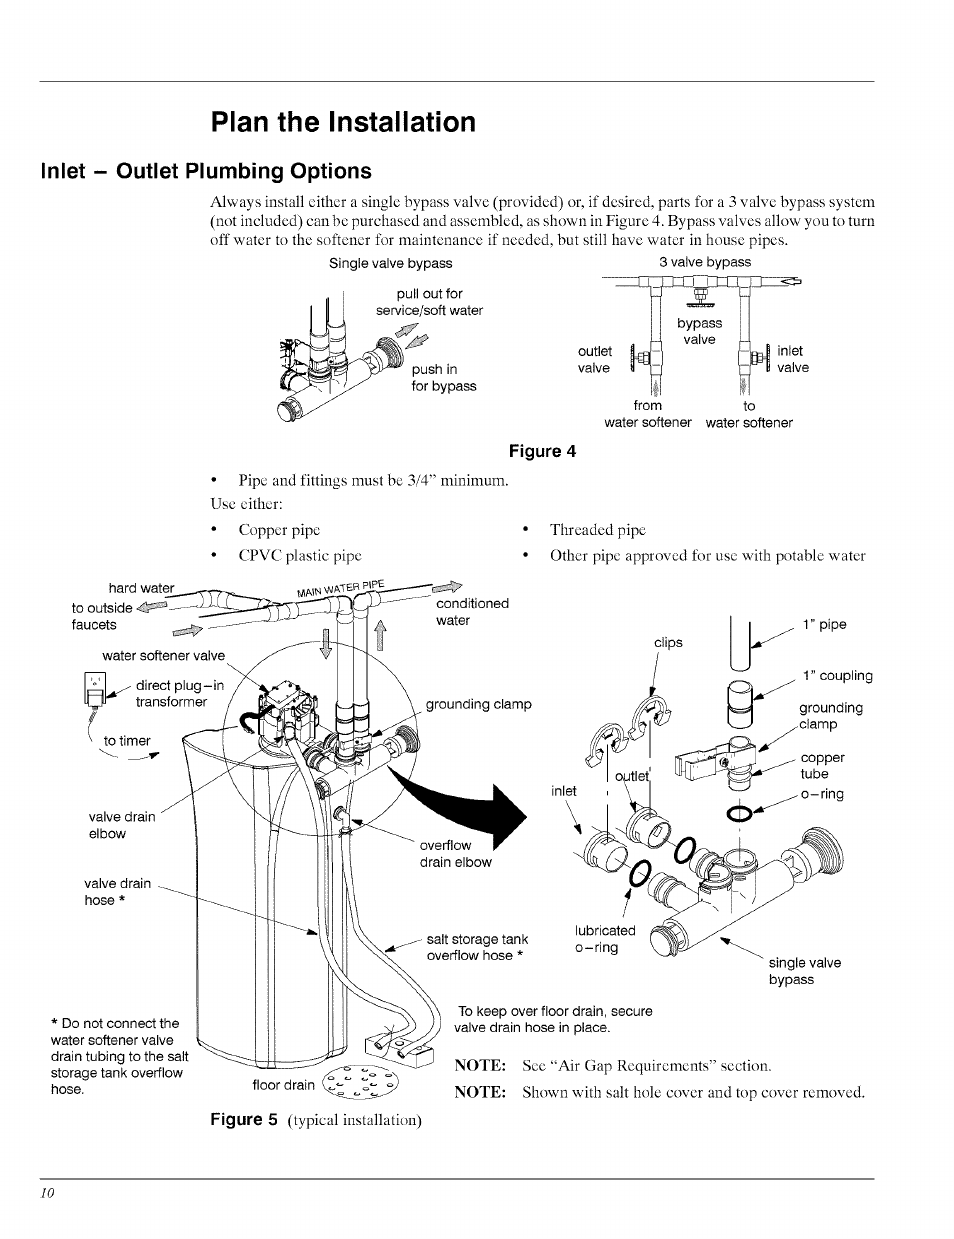 Inlet - outlet plumbing options, Plan the installation | Whirlpool ...